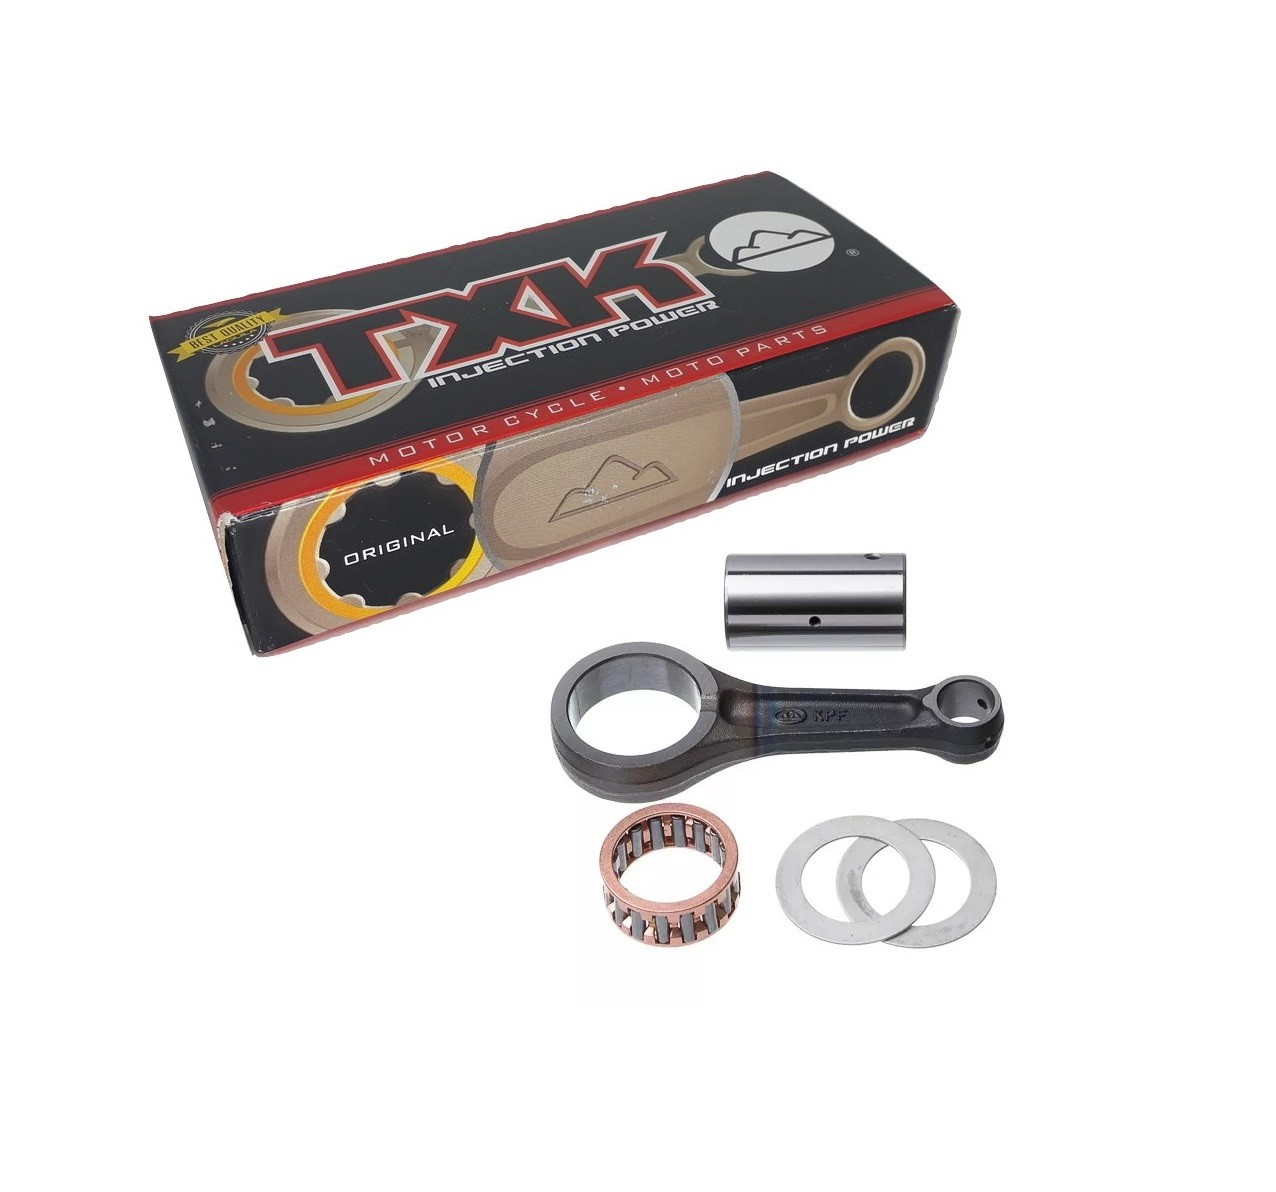 Biela TXK Twister / Tornado Injection Power Completa OEM